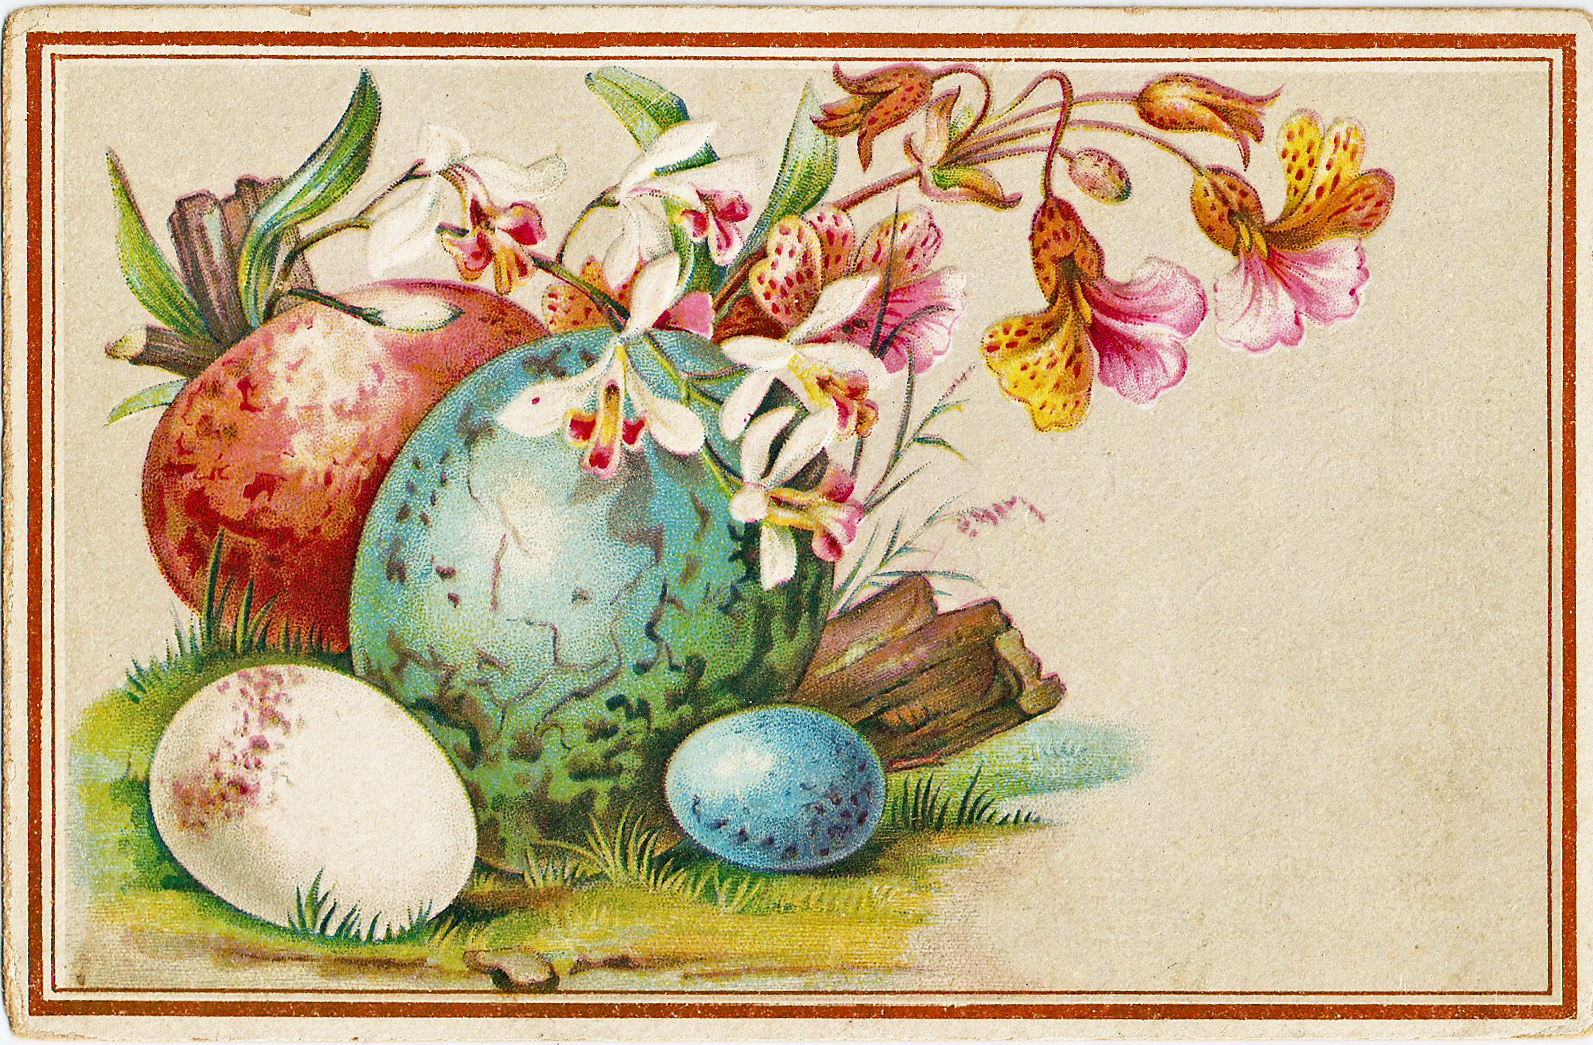 catnipstudiocollage free vintage clip art easter eggs trade card